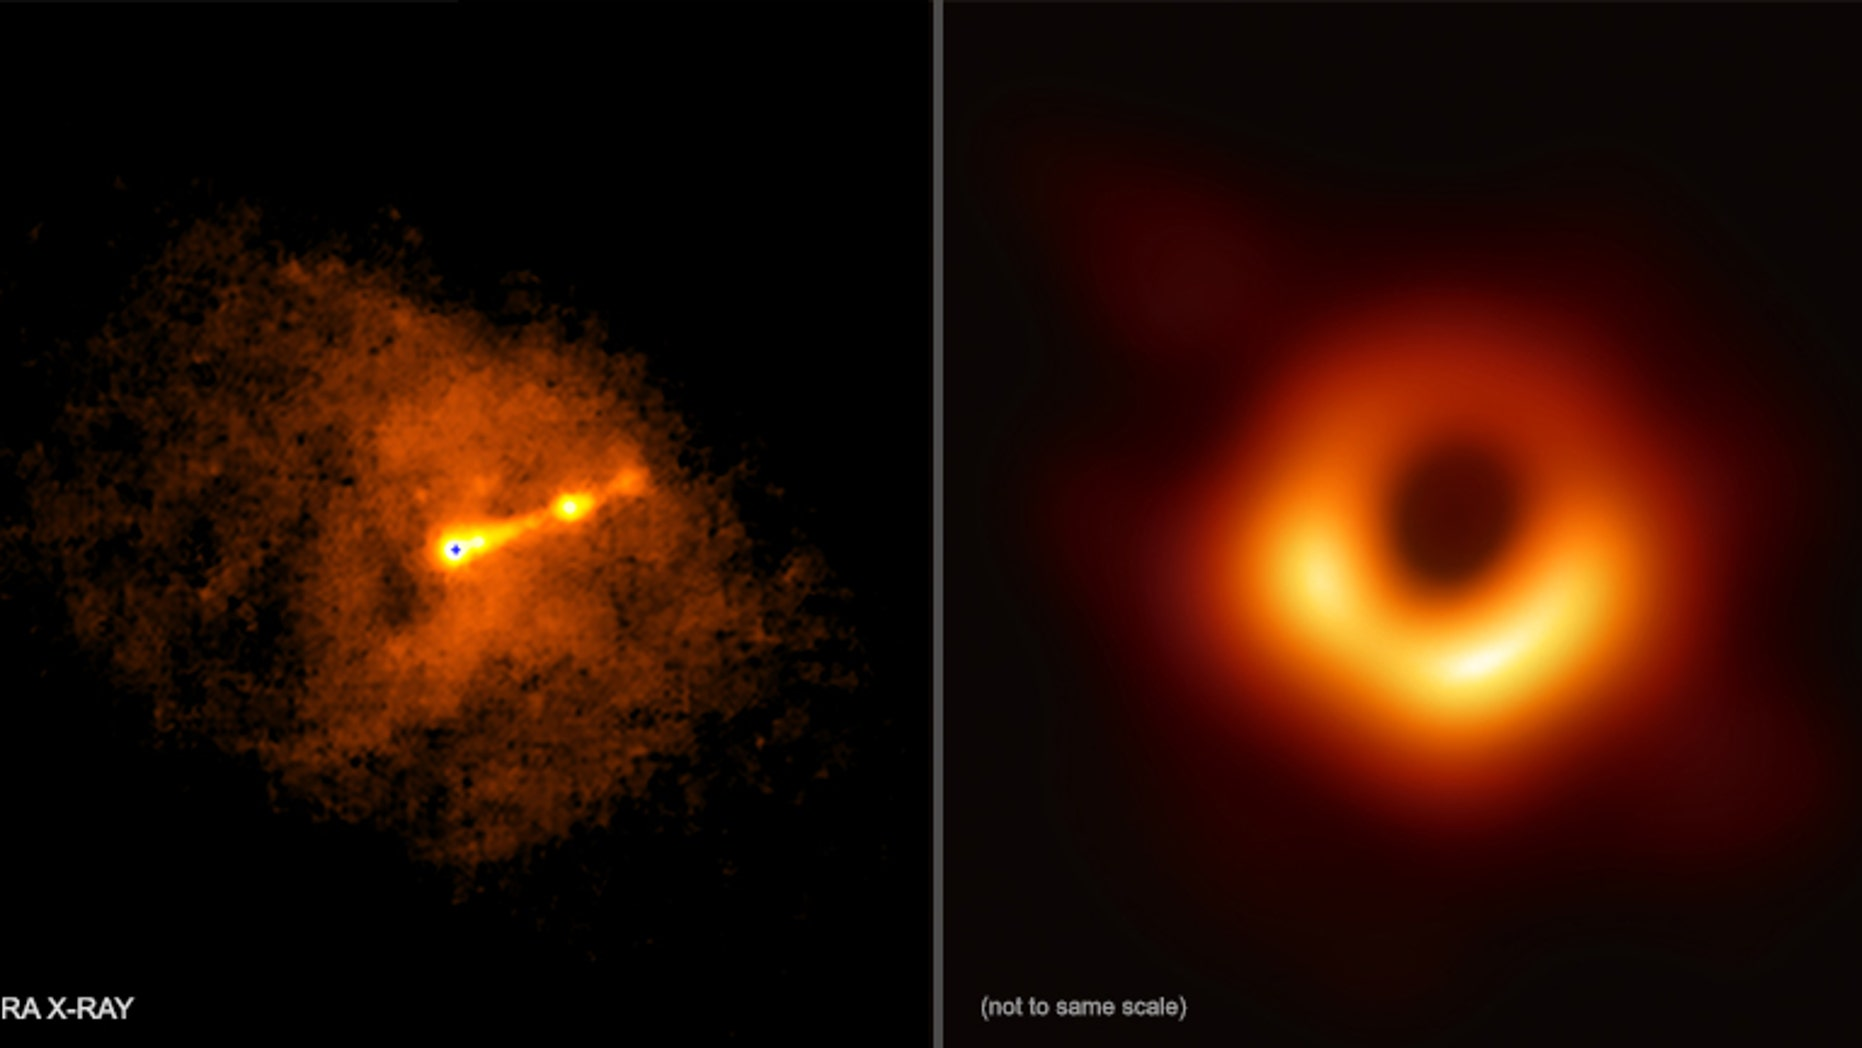 On the left, an image taken using the CHANDRA X-Ray Telescope at the same time as the Event Horizons Telescope made its picture shows a relatavistic jet crossing the Virga A galaxy. On the right is the image of the black hole shadow from the Event Horizons Telescope.